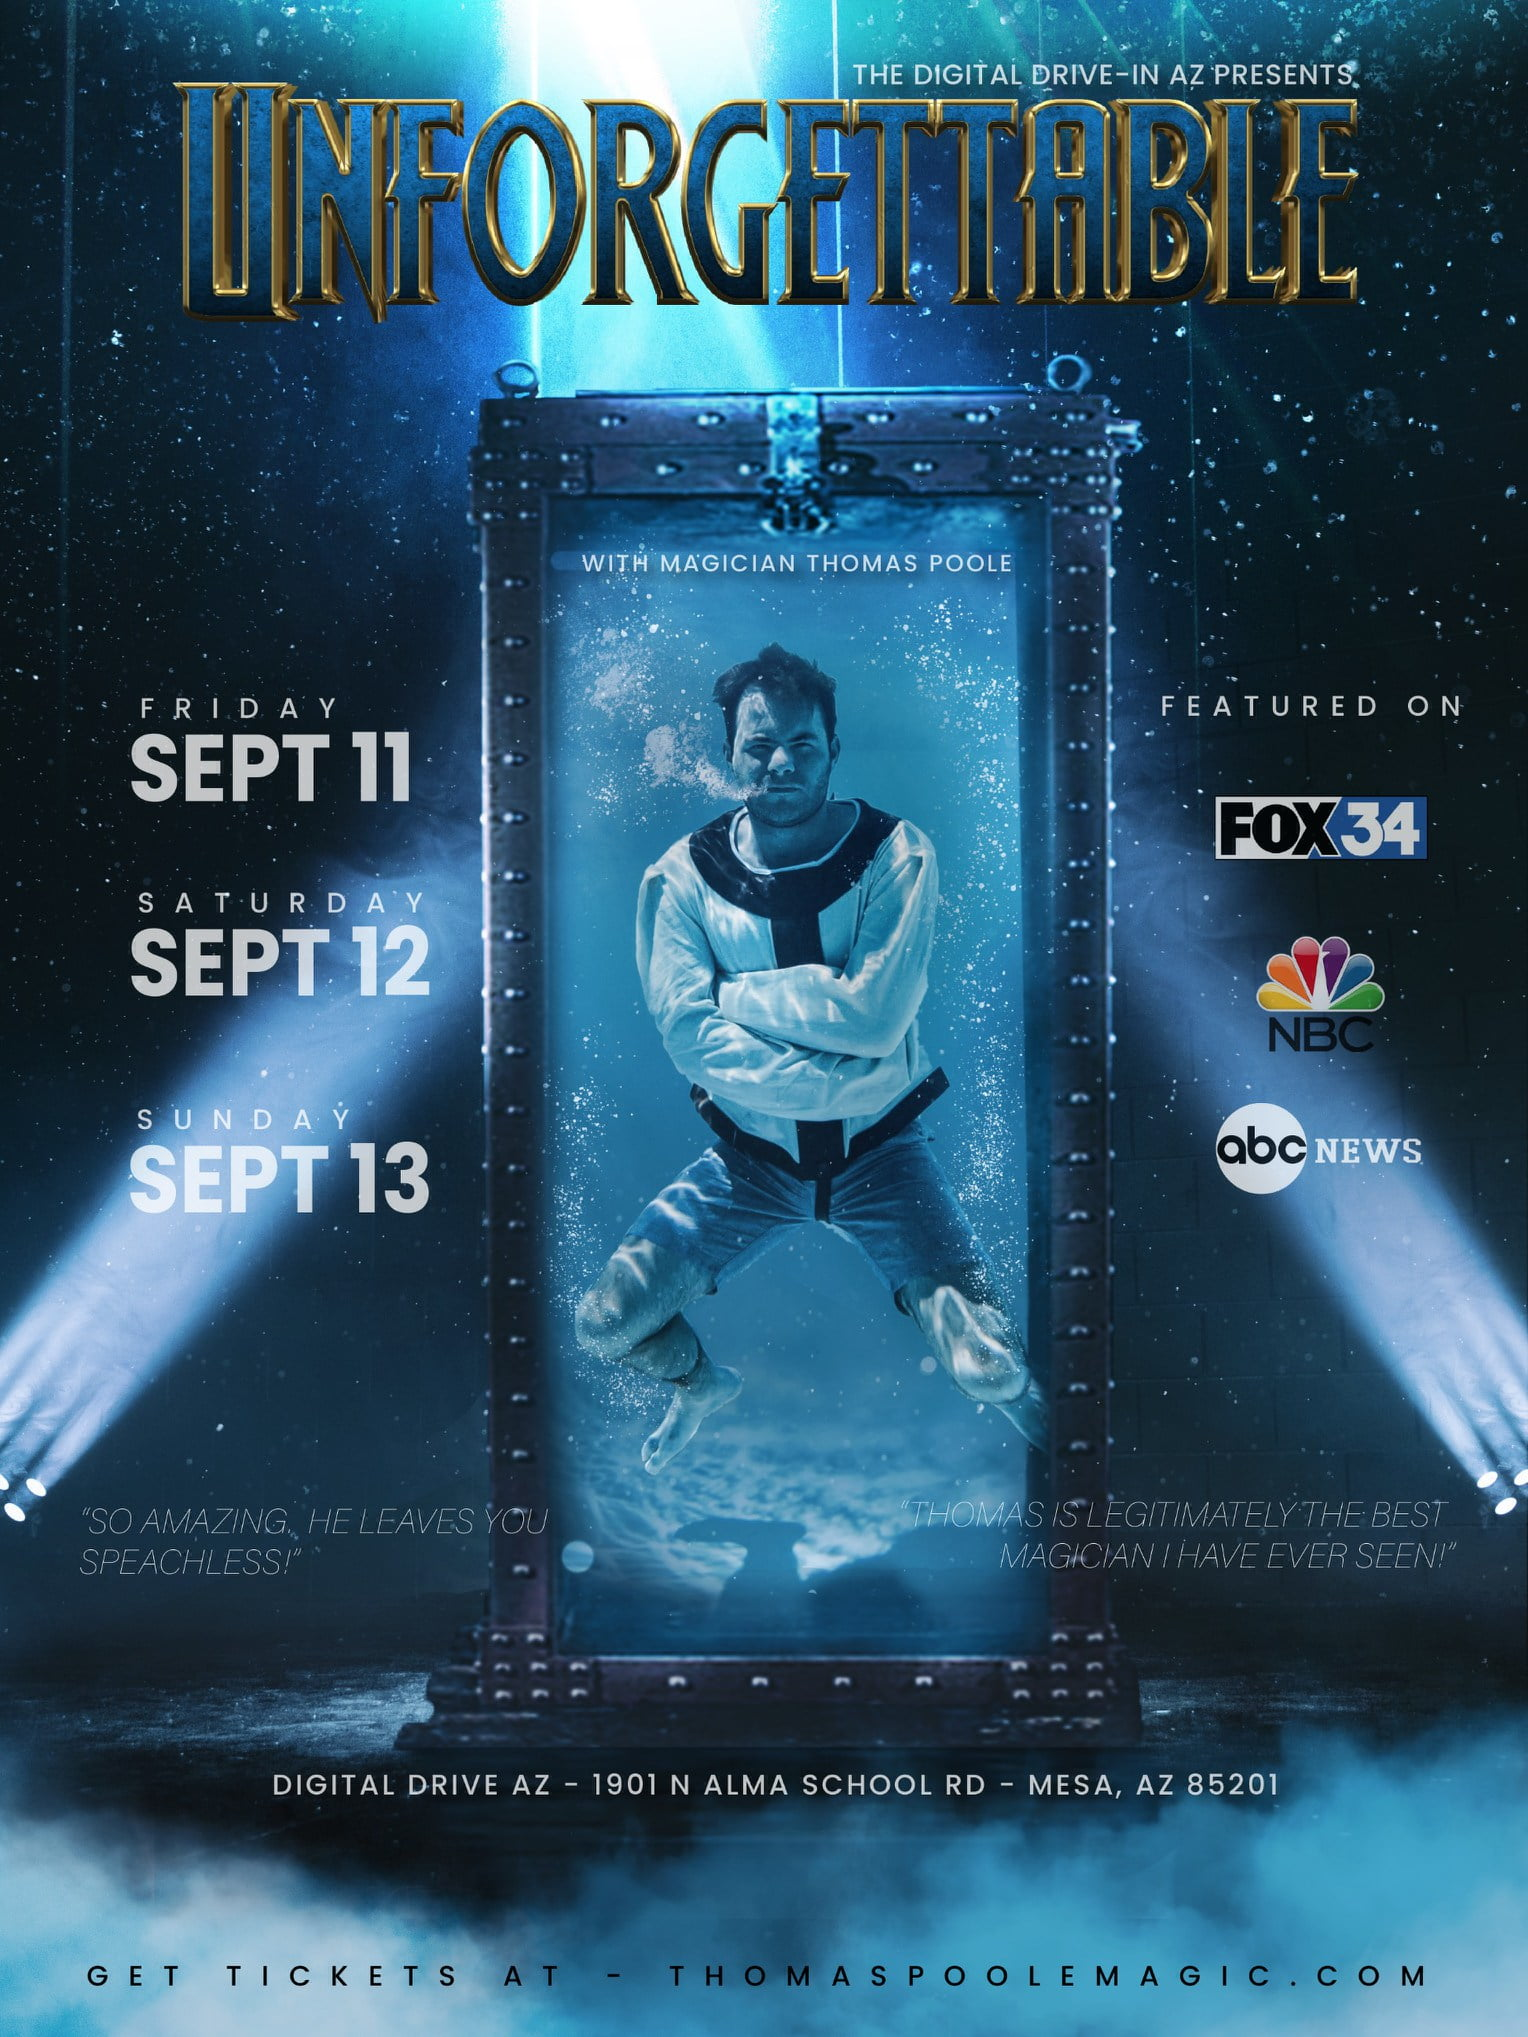 'UNFORGETTABLE': Magician Thomas Poole Set to Unveil Harry Houdini-Inspired Underwater Escape at Mesa's Digital Drive-in on Sept. 11-13